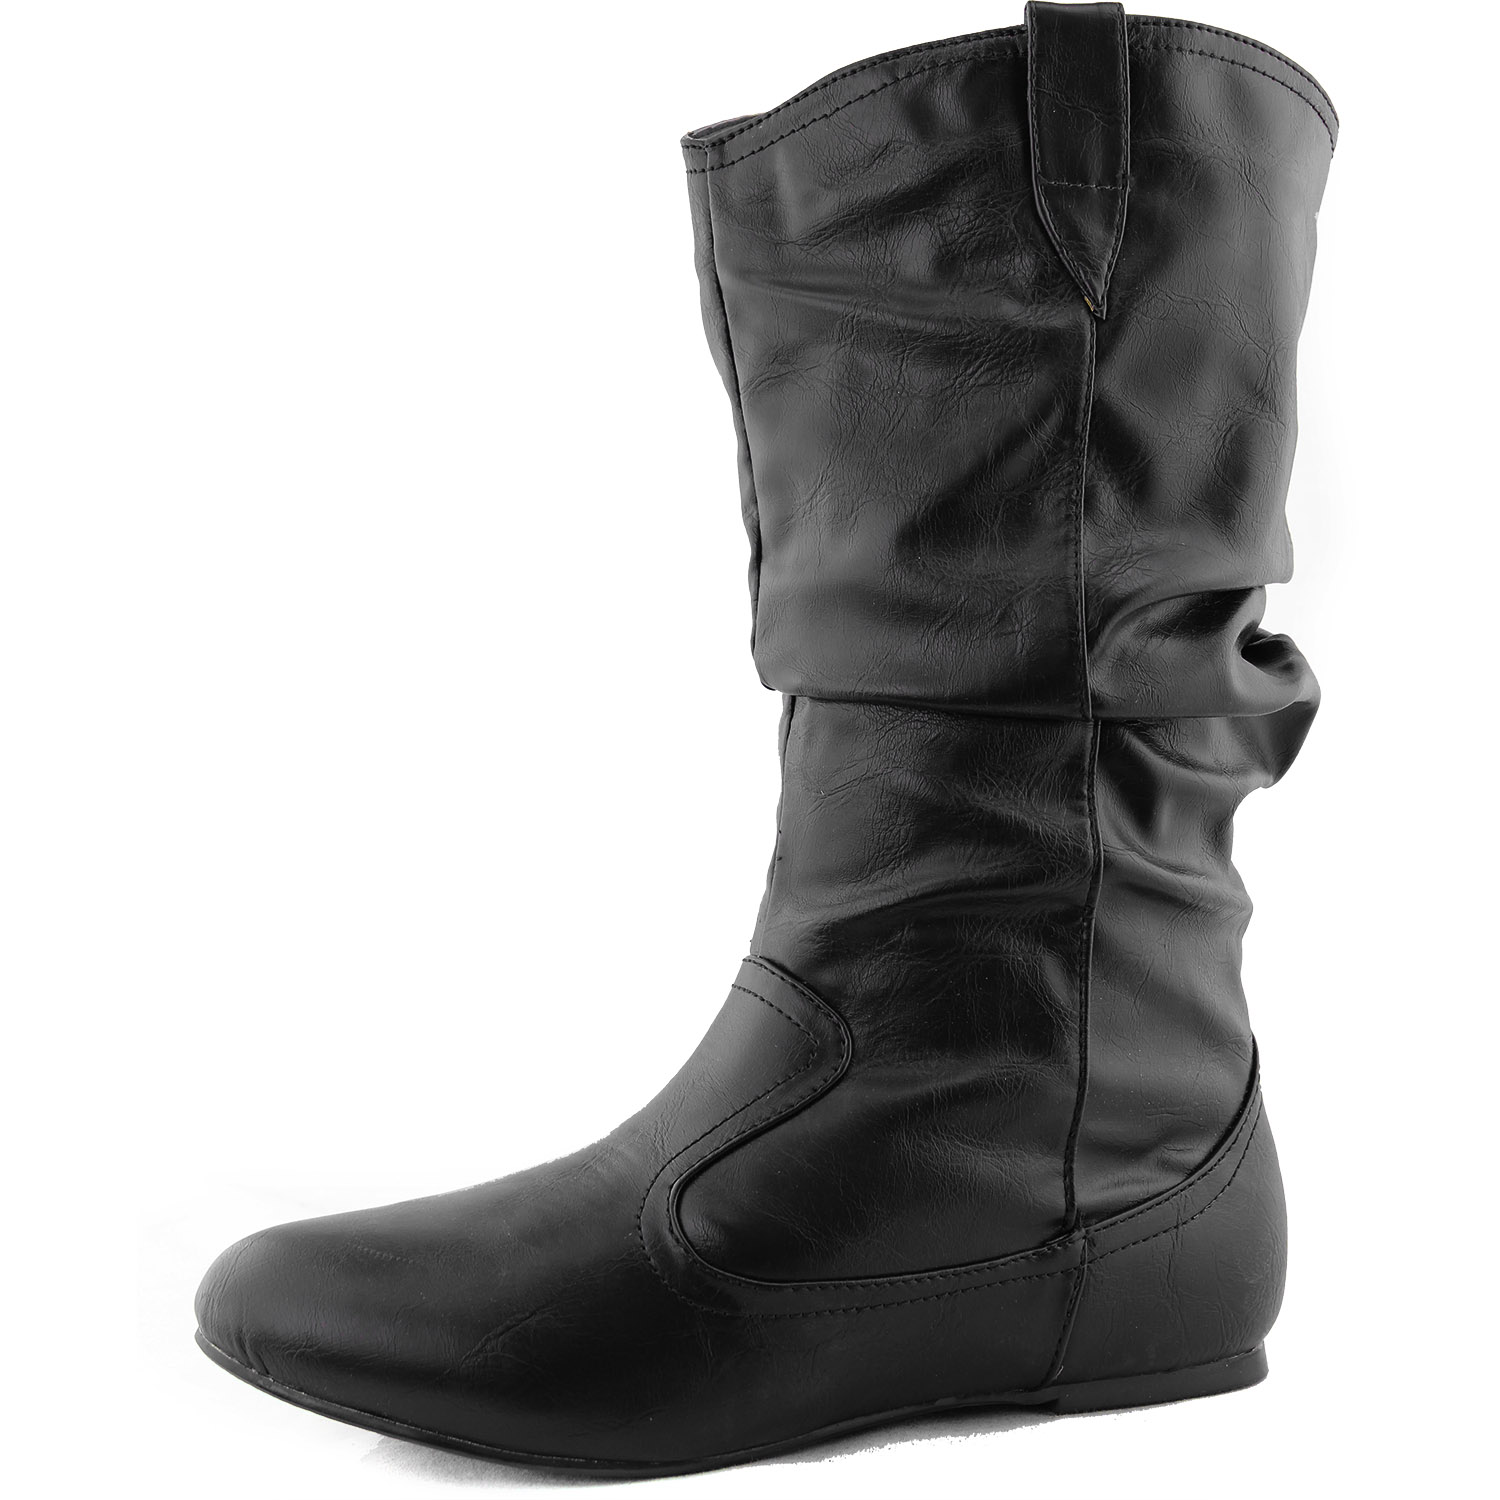 mid calf toe boots slouch comfort casual flat faux